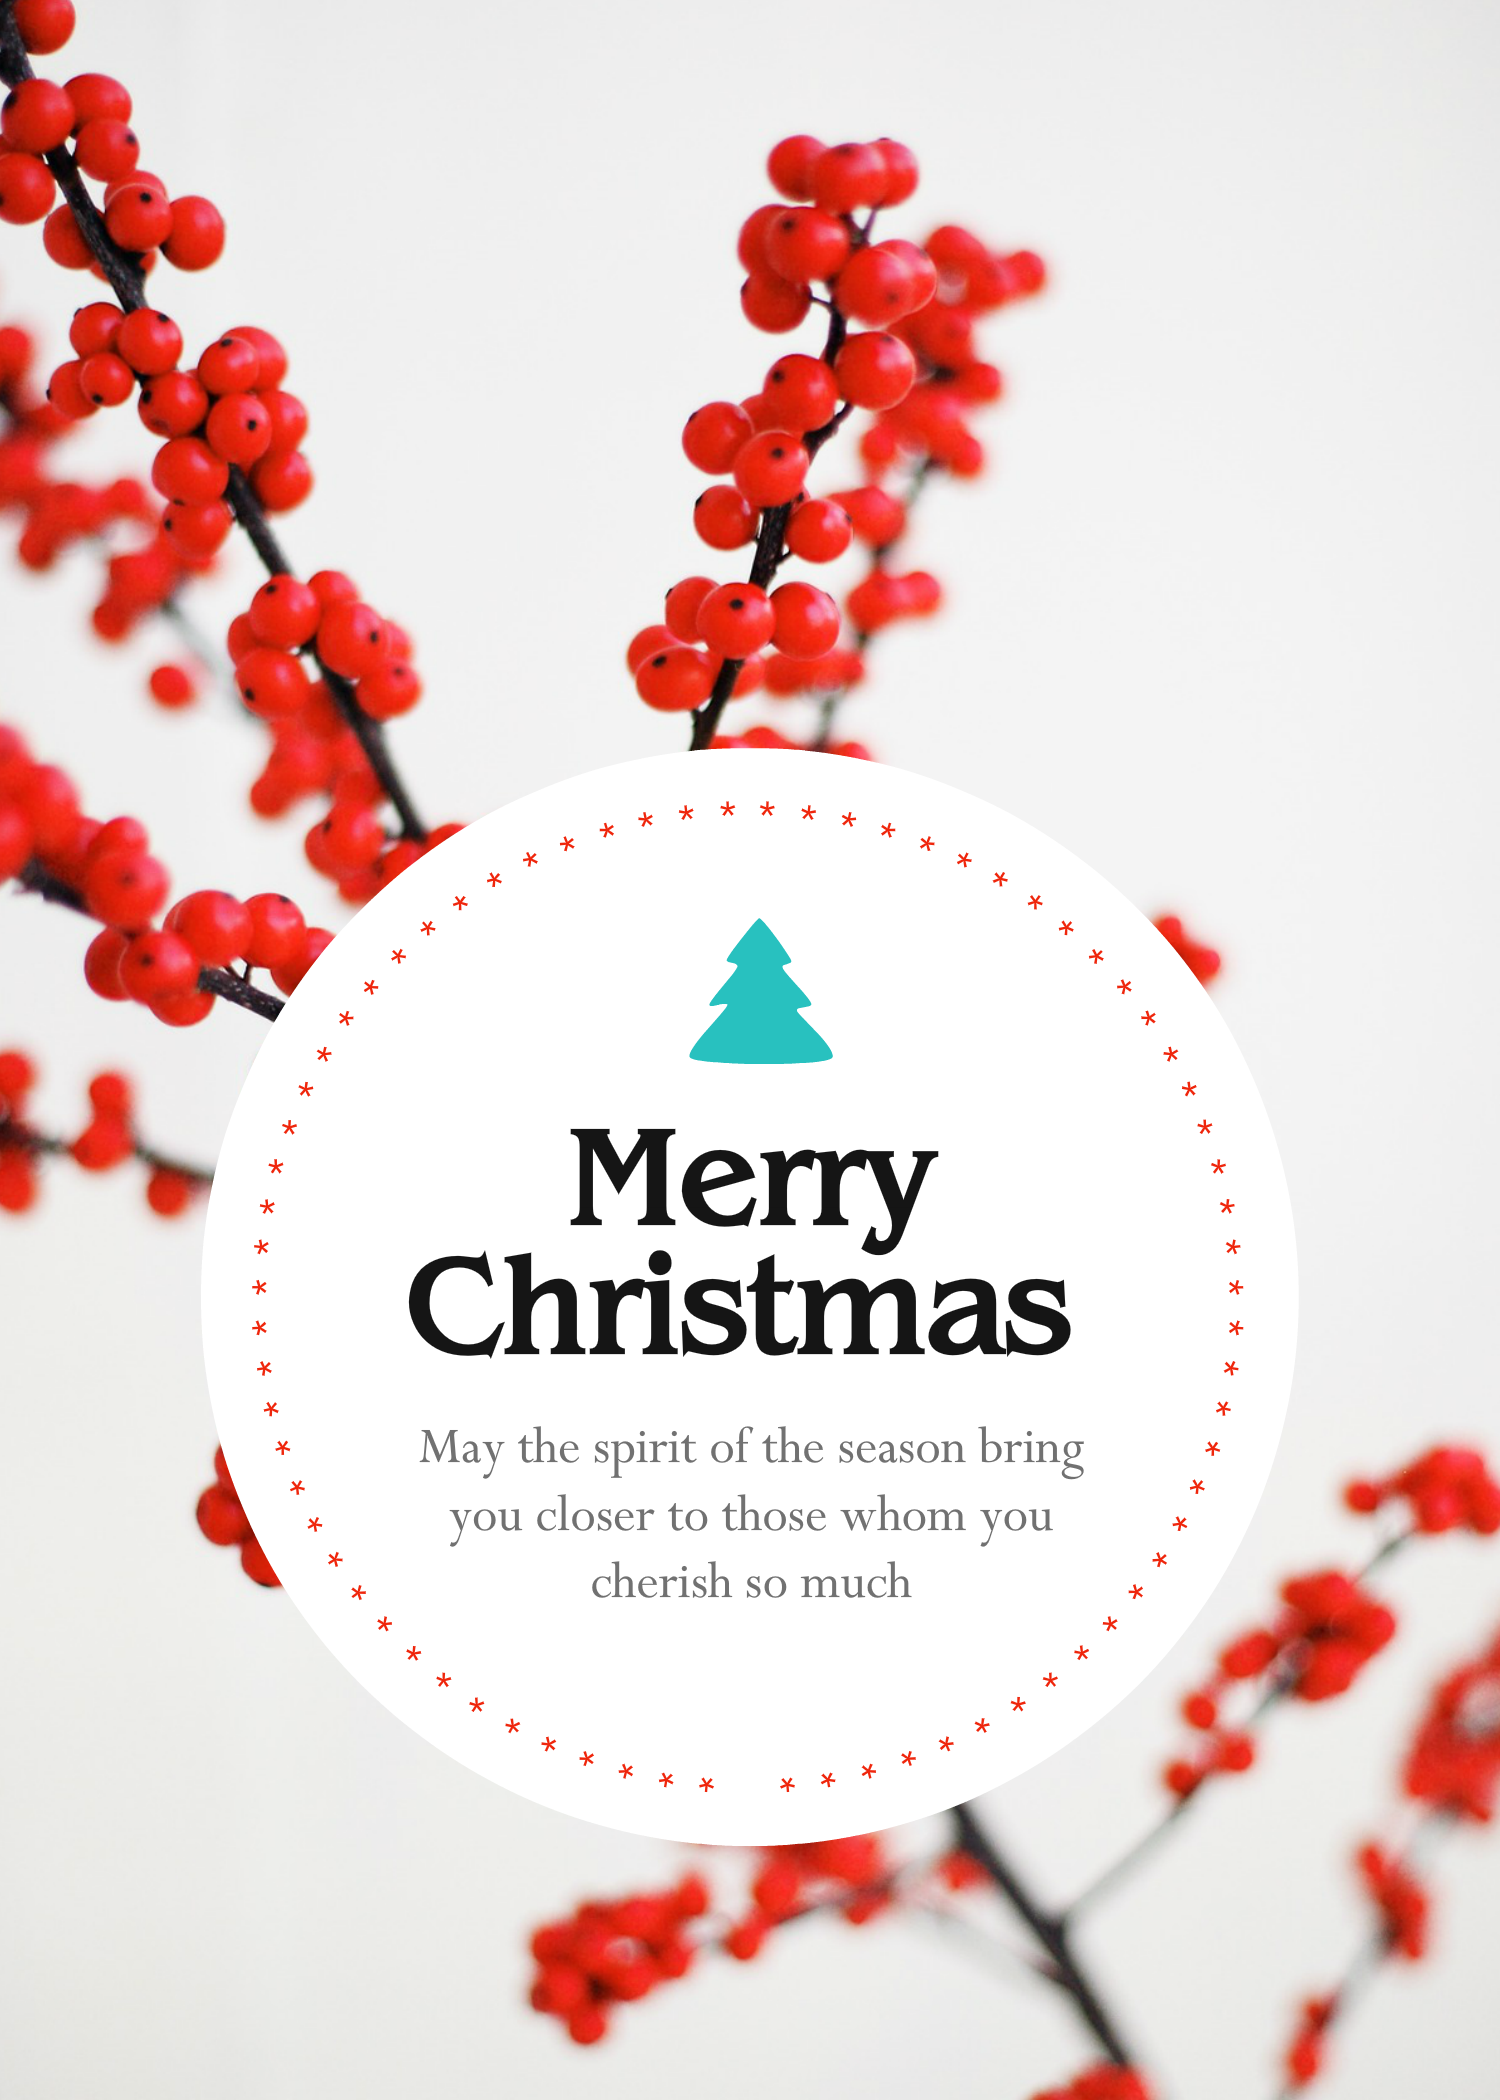 Greeting Card Template Created With Youzign Christmasspirit Theme Free Graphic Design Greeting Card Template Card Template